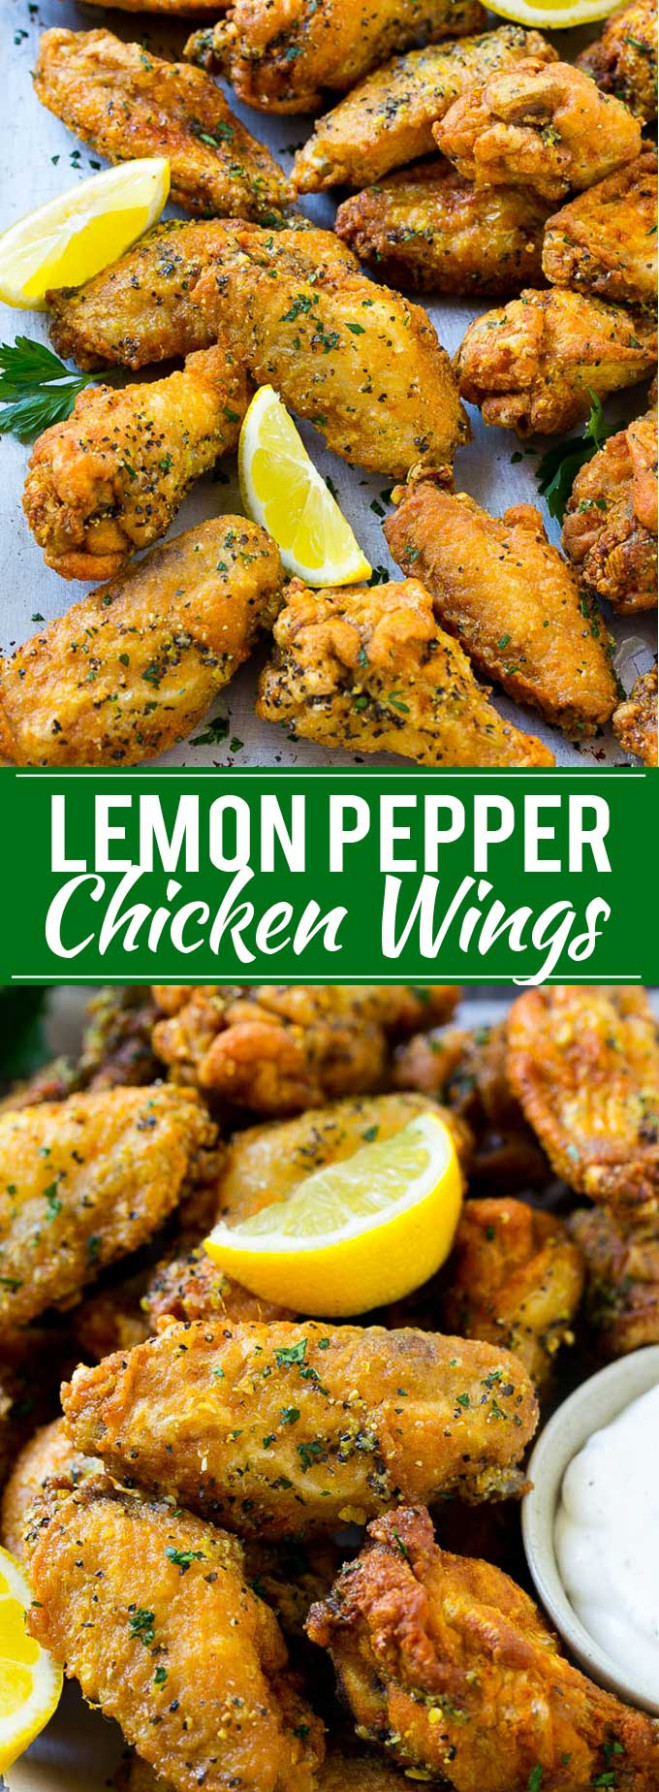 20 Delectable Fried Chicken Recipes - Dinner At The Zoo - Chicken Recipes Lemon Pepper